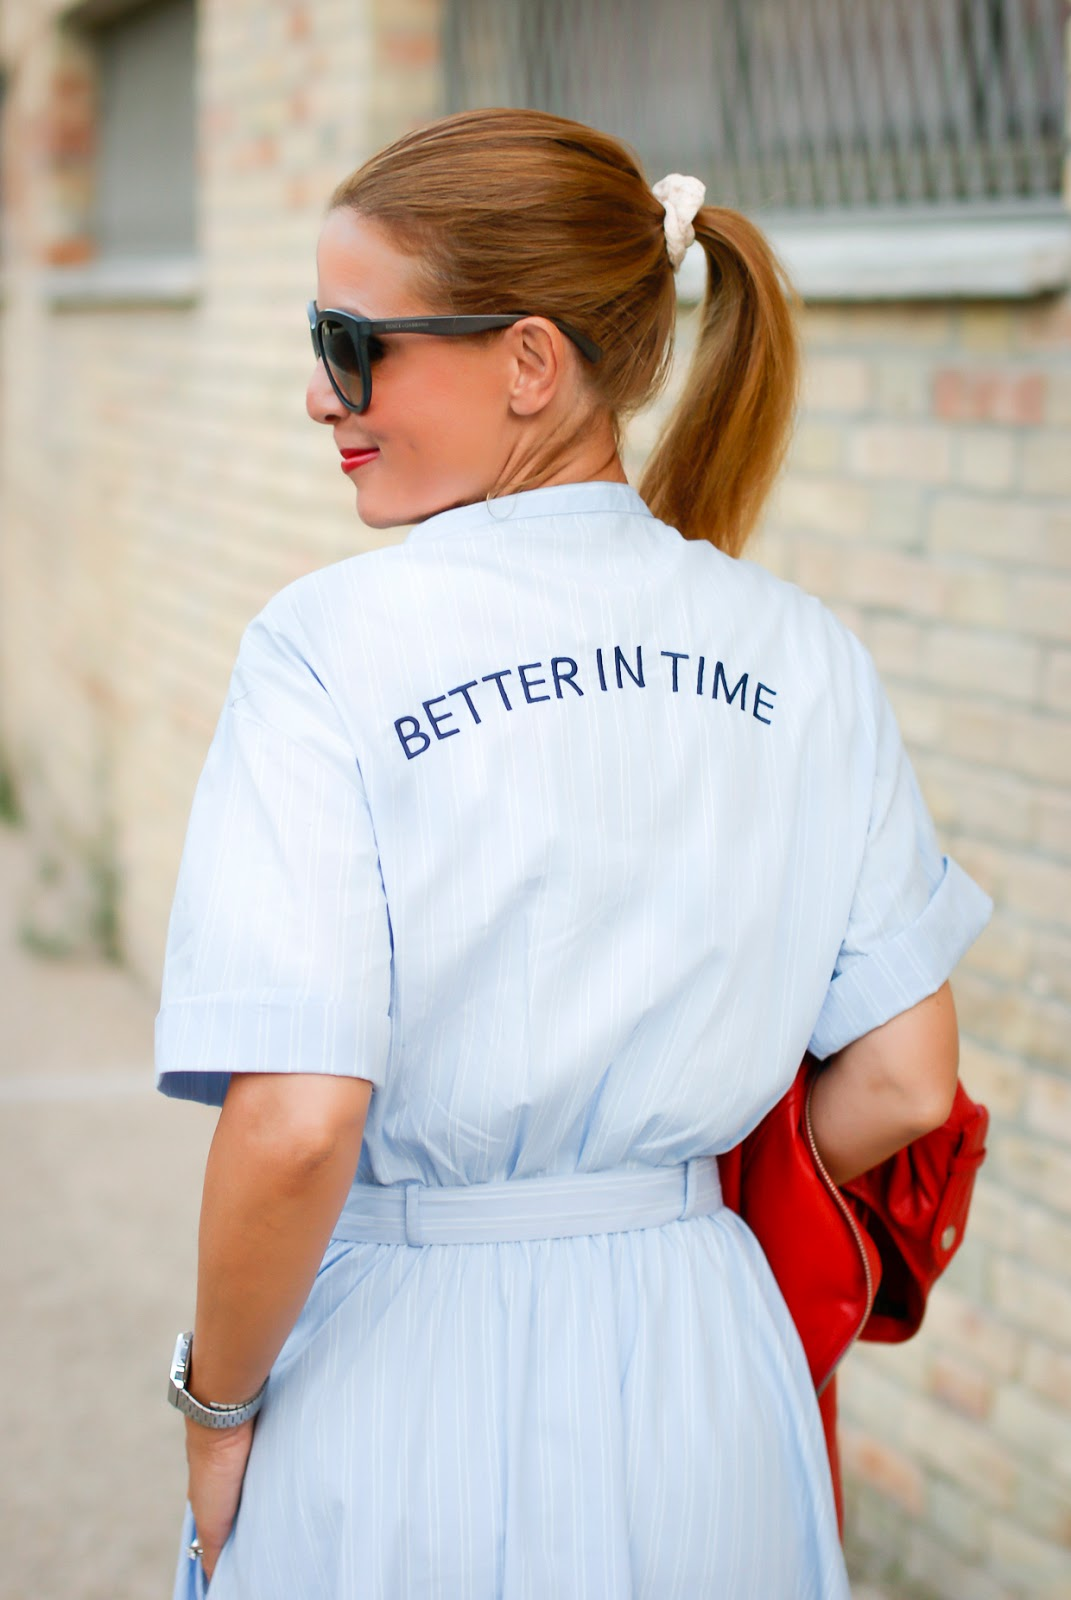 Better in time dress from Zara on Fashion and Cookies fashion blog, fashion blogger style